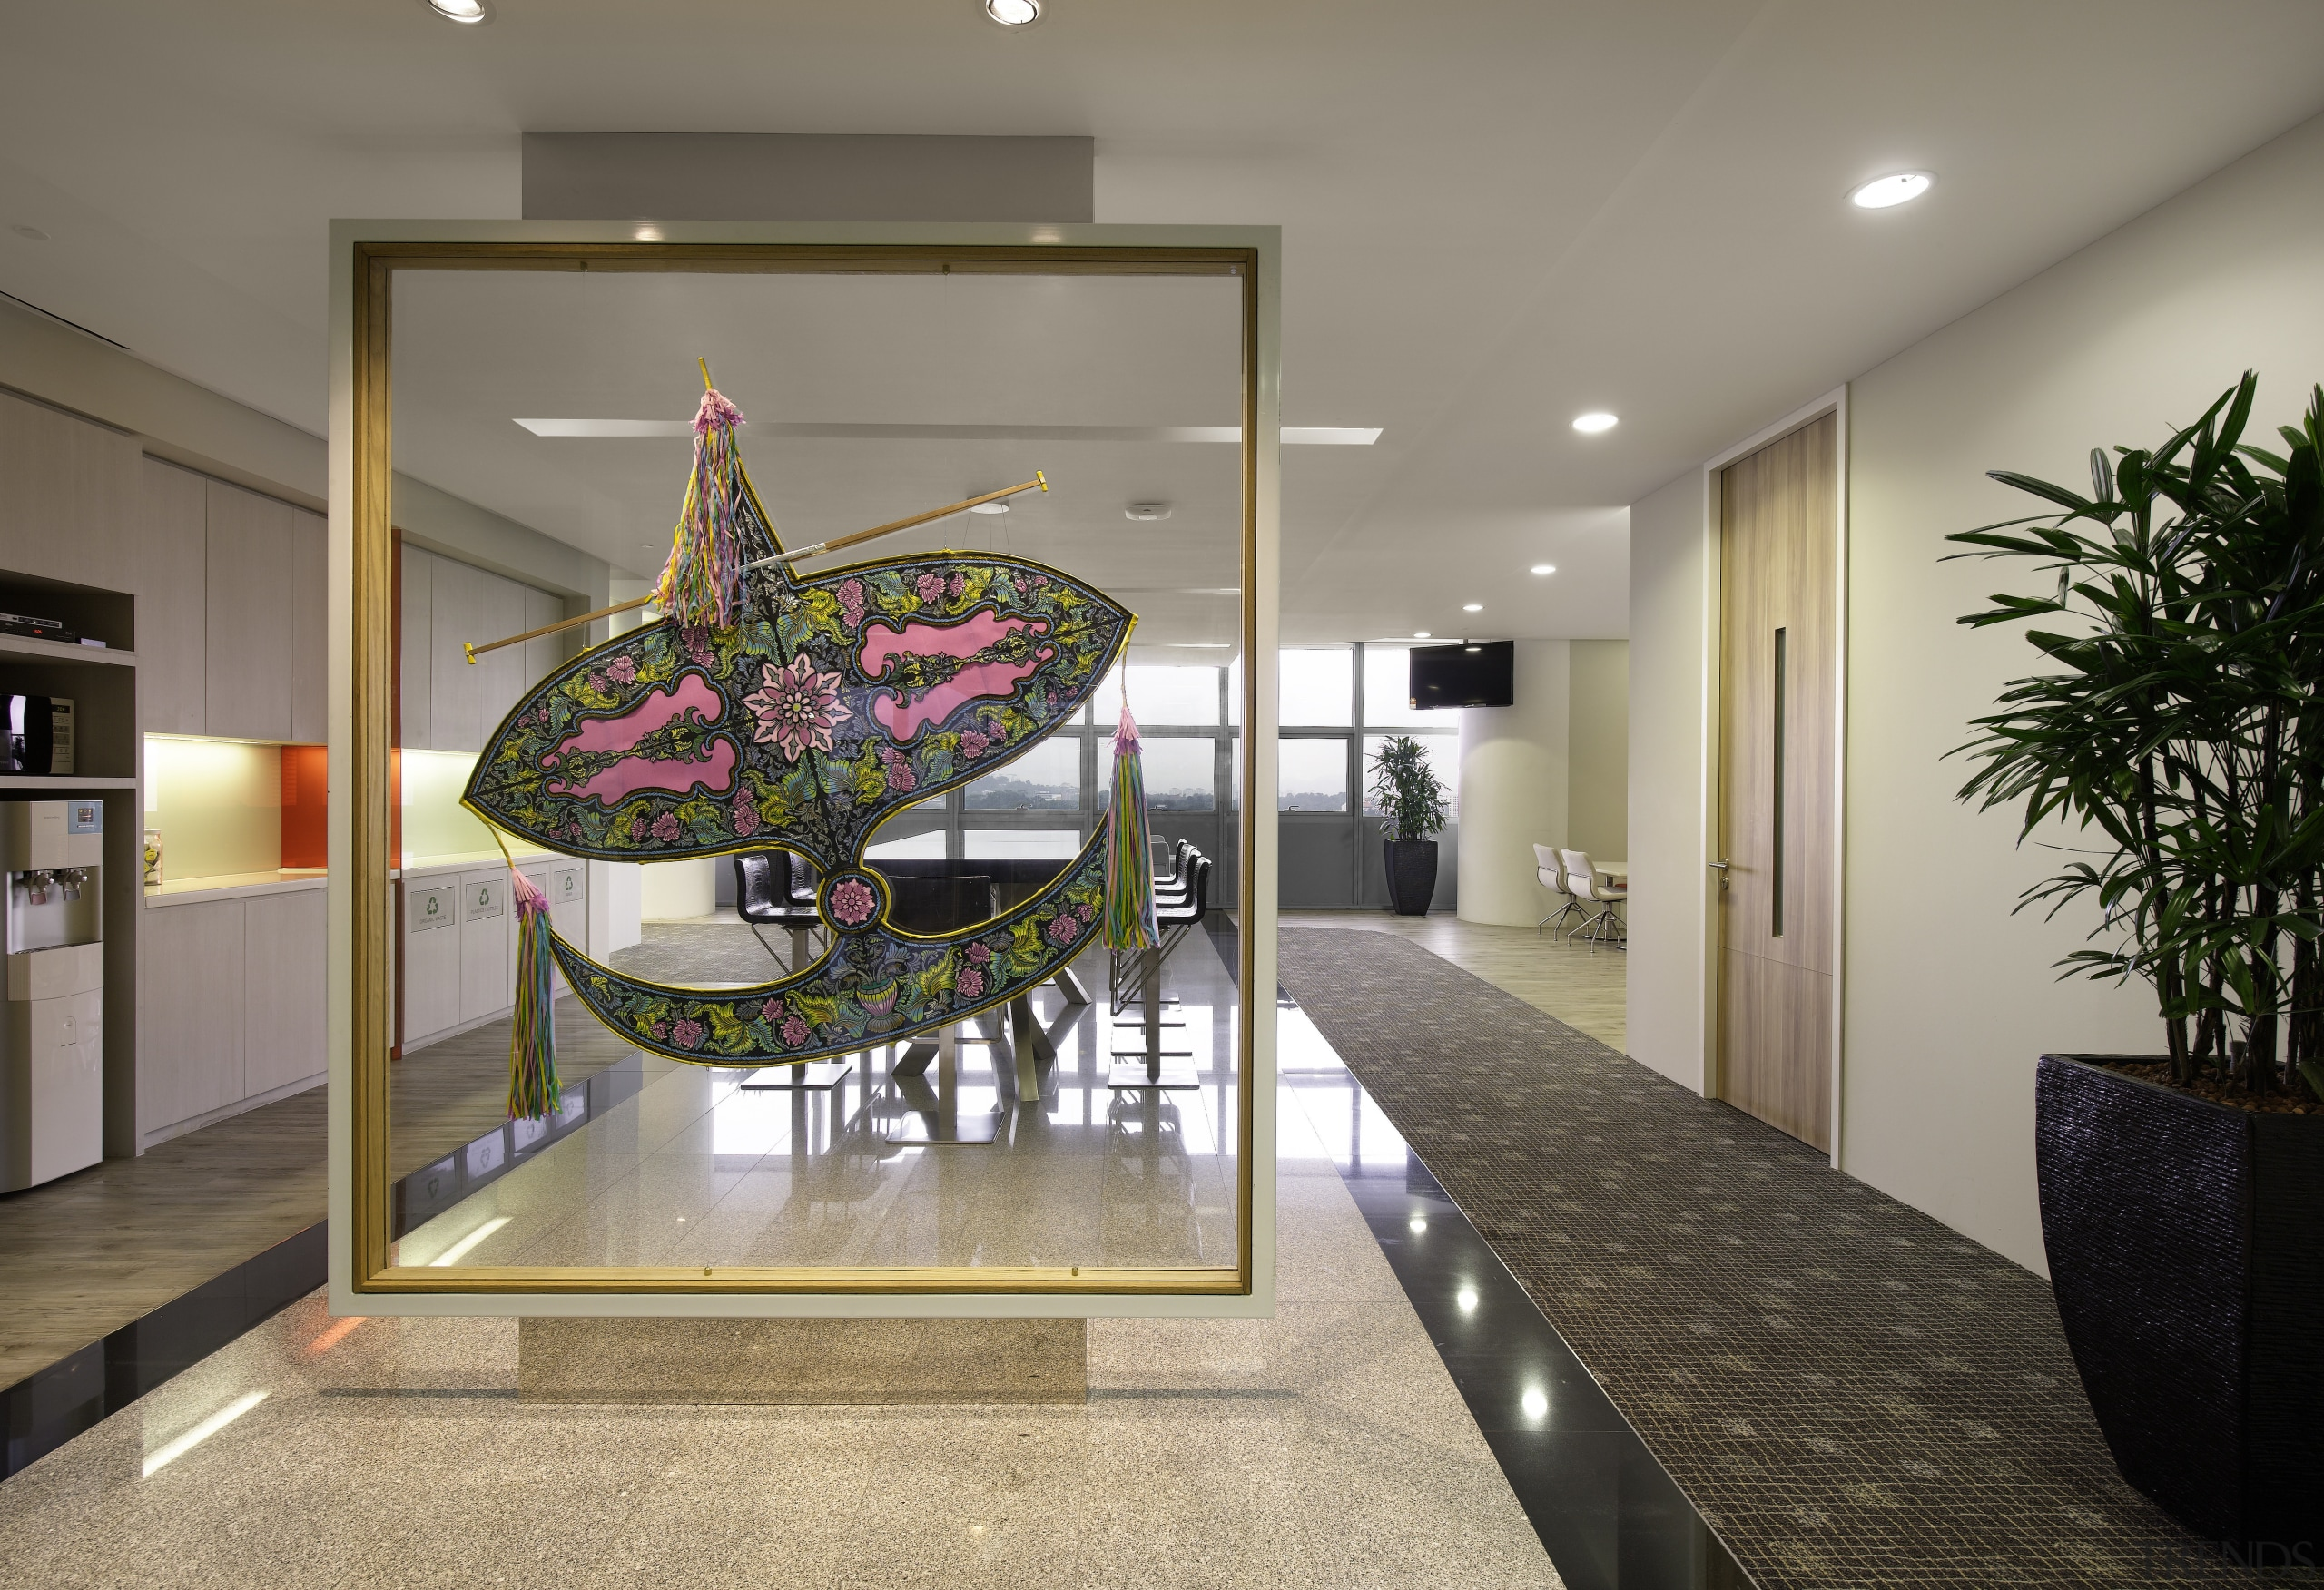 The Malaysian kite is one of several wayfinding interior design, lobby, real estate, gray